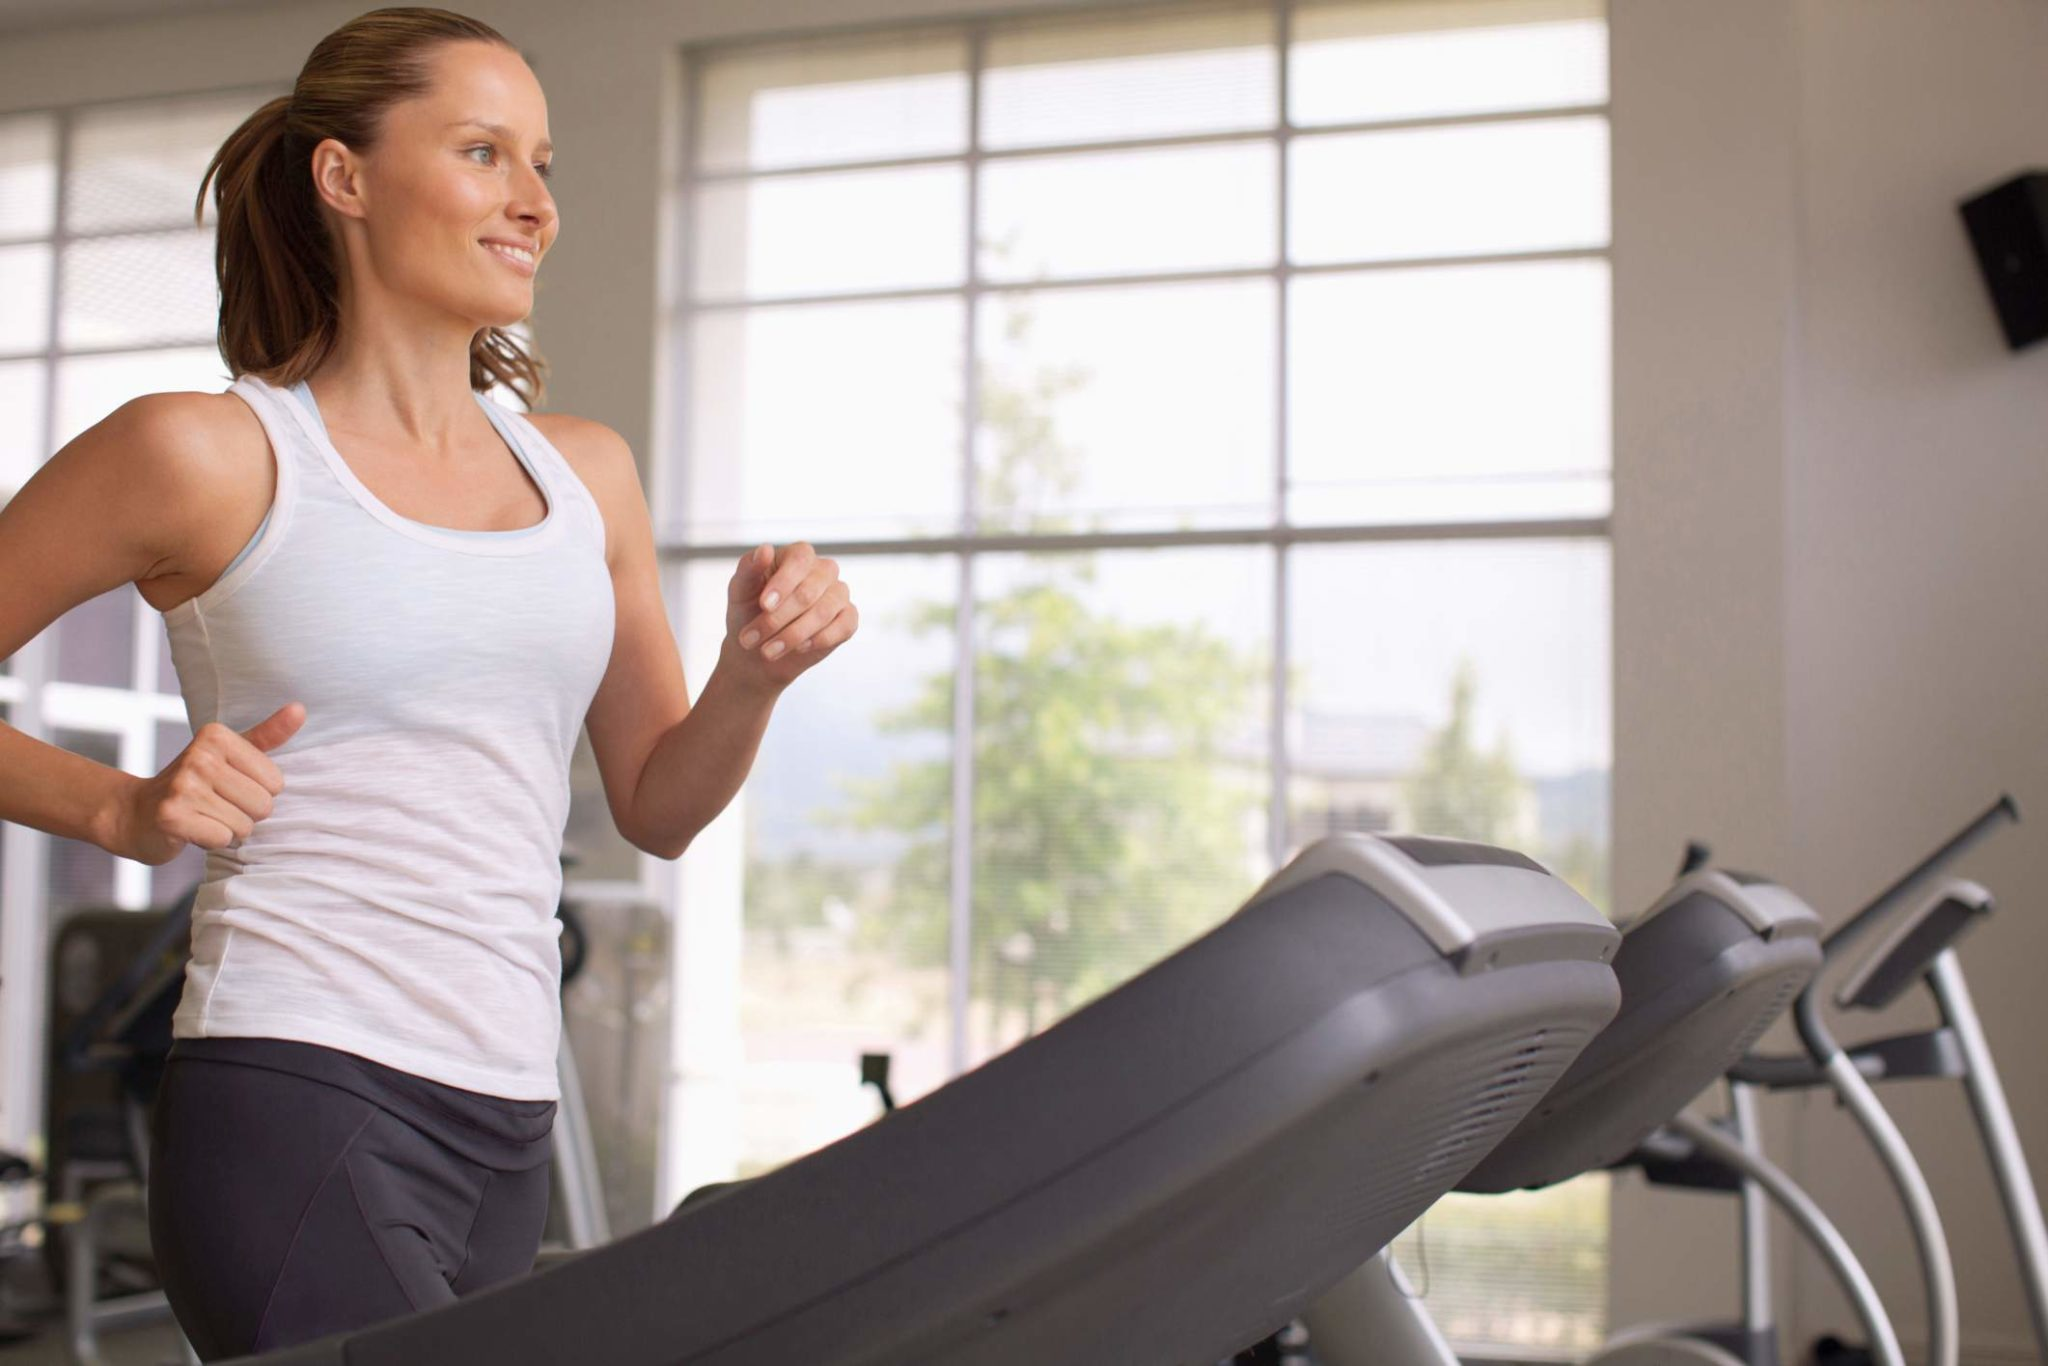 Exercise Health and Wellbeing